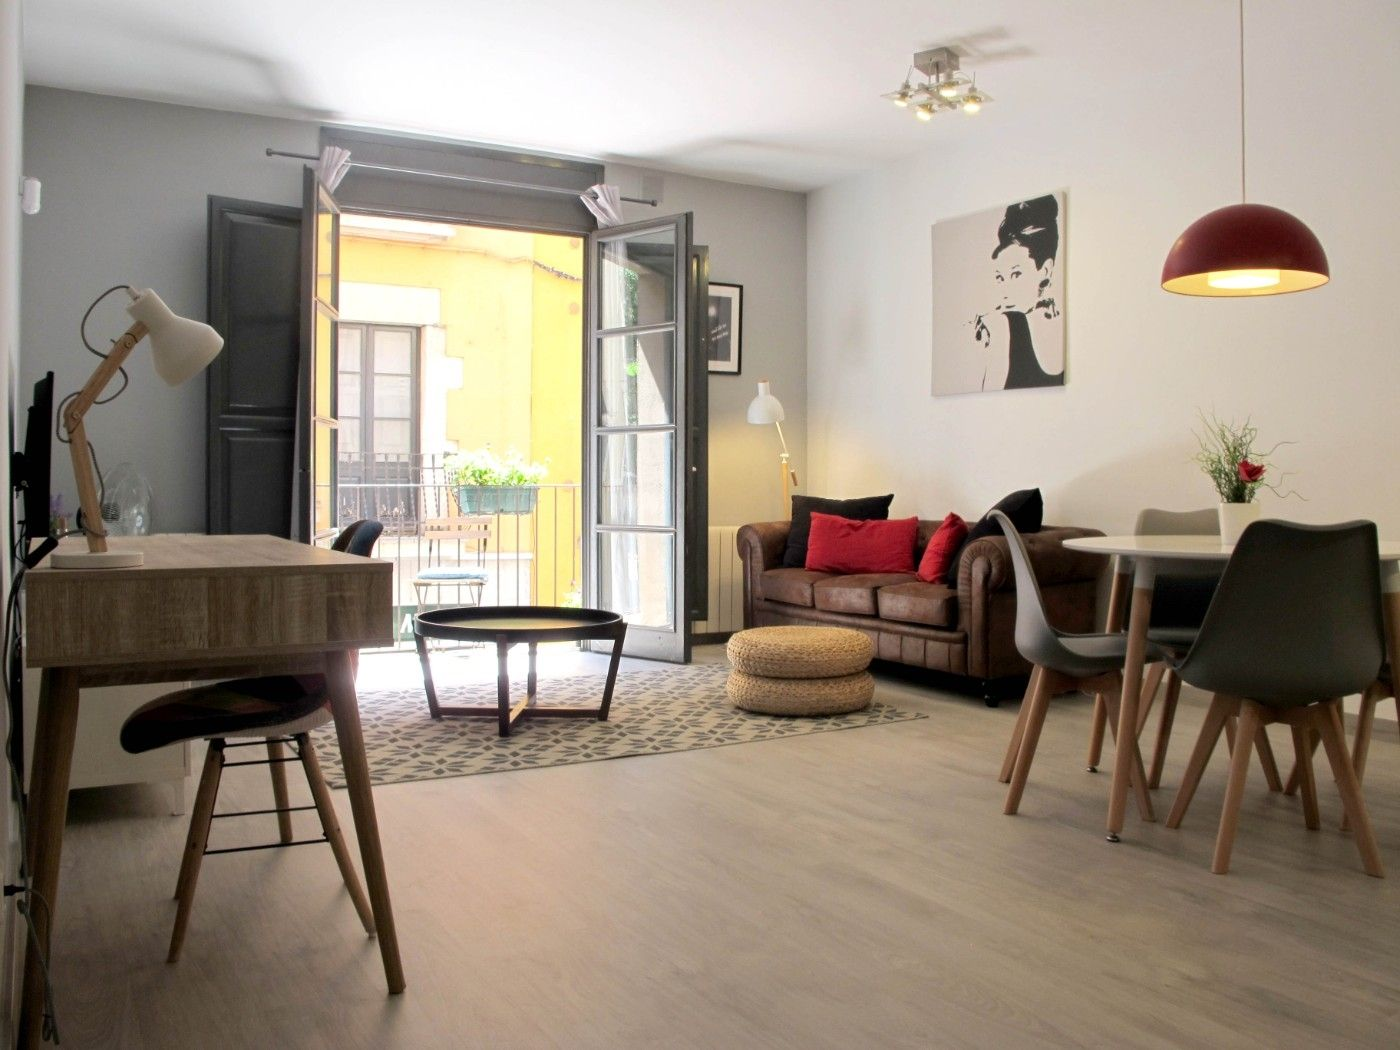 Location Appartement à Carrer jaume pons marti, 1. Pis barri vell girona